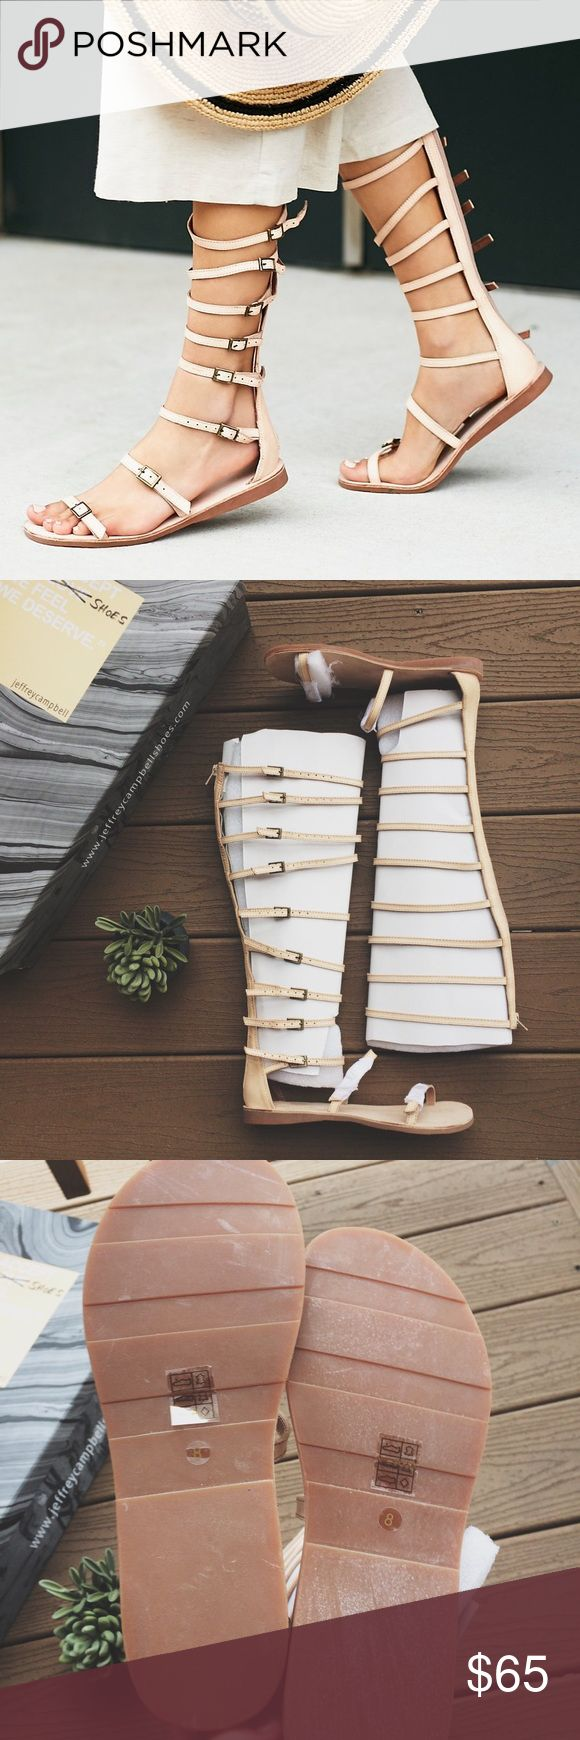 "🌿HP🌿 FP/Jeffrey Campbell ""Star Valley"" Gladiator (NEW IN BOX) Free People / Jeffrey Campbell ""Star Valley"" Gladiator Sandal in sz 8. Color is ""Natural,"" which is a peachy-nude shade. 🌿 Tried on 1x! I'm a true 7.5, but the 8 fit my foot perfectly! Zipper runs down shaft of sandal. I'm 5'6"" and these hit me around the knee. RTP $198 -- original box included. #jc #fp #roman #strappy #neutral #beach #buckle --- Measurements: sole approx 10"" long; shaft 15.25"" high; top strap is 14.""5 around…"